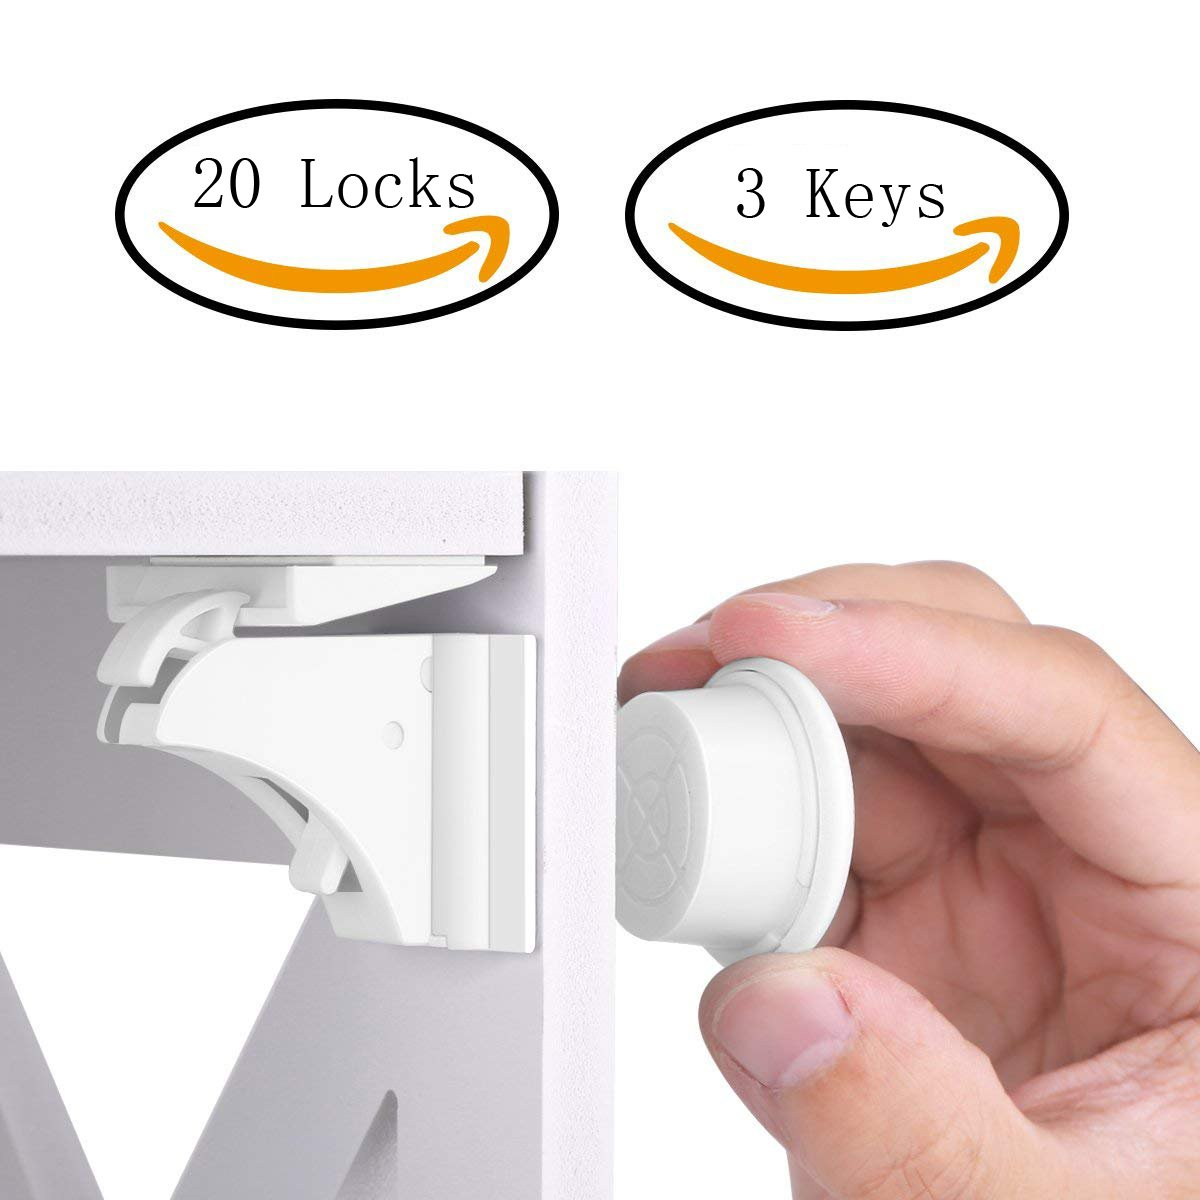 TOOLIC Magnetic Child Safety Locks Kits for Cabinet Drawer Cupboard Door Baby Proof Invisible No Drilling Design (3 Keys & 20 Locks) by TOOLIC (Image #1)